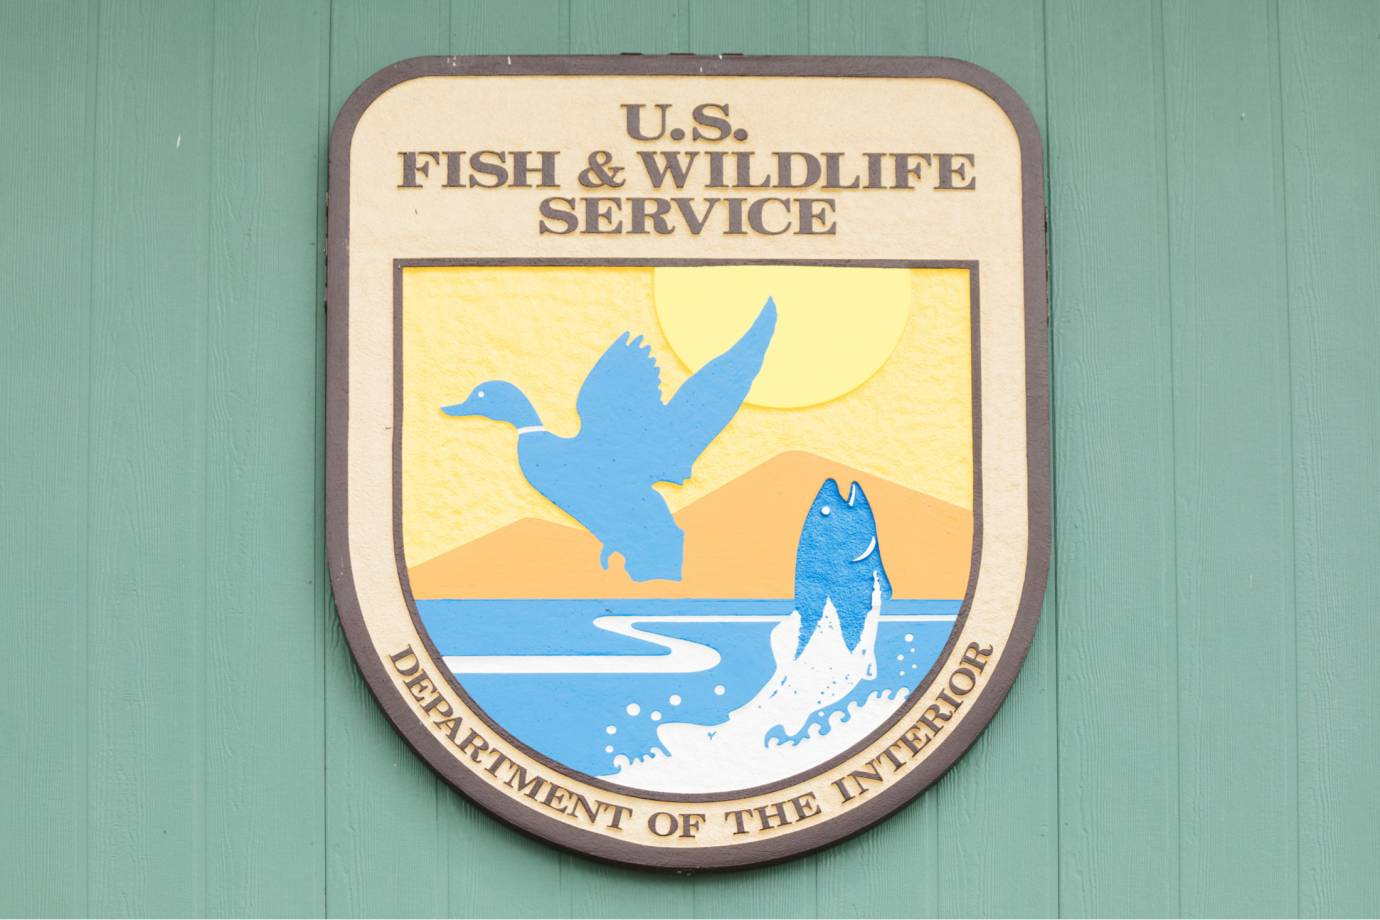 US Department of the Interior's Fish and Wildlife Service sign